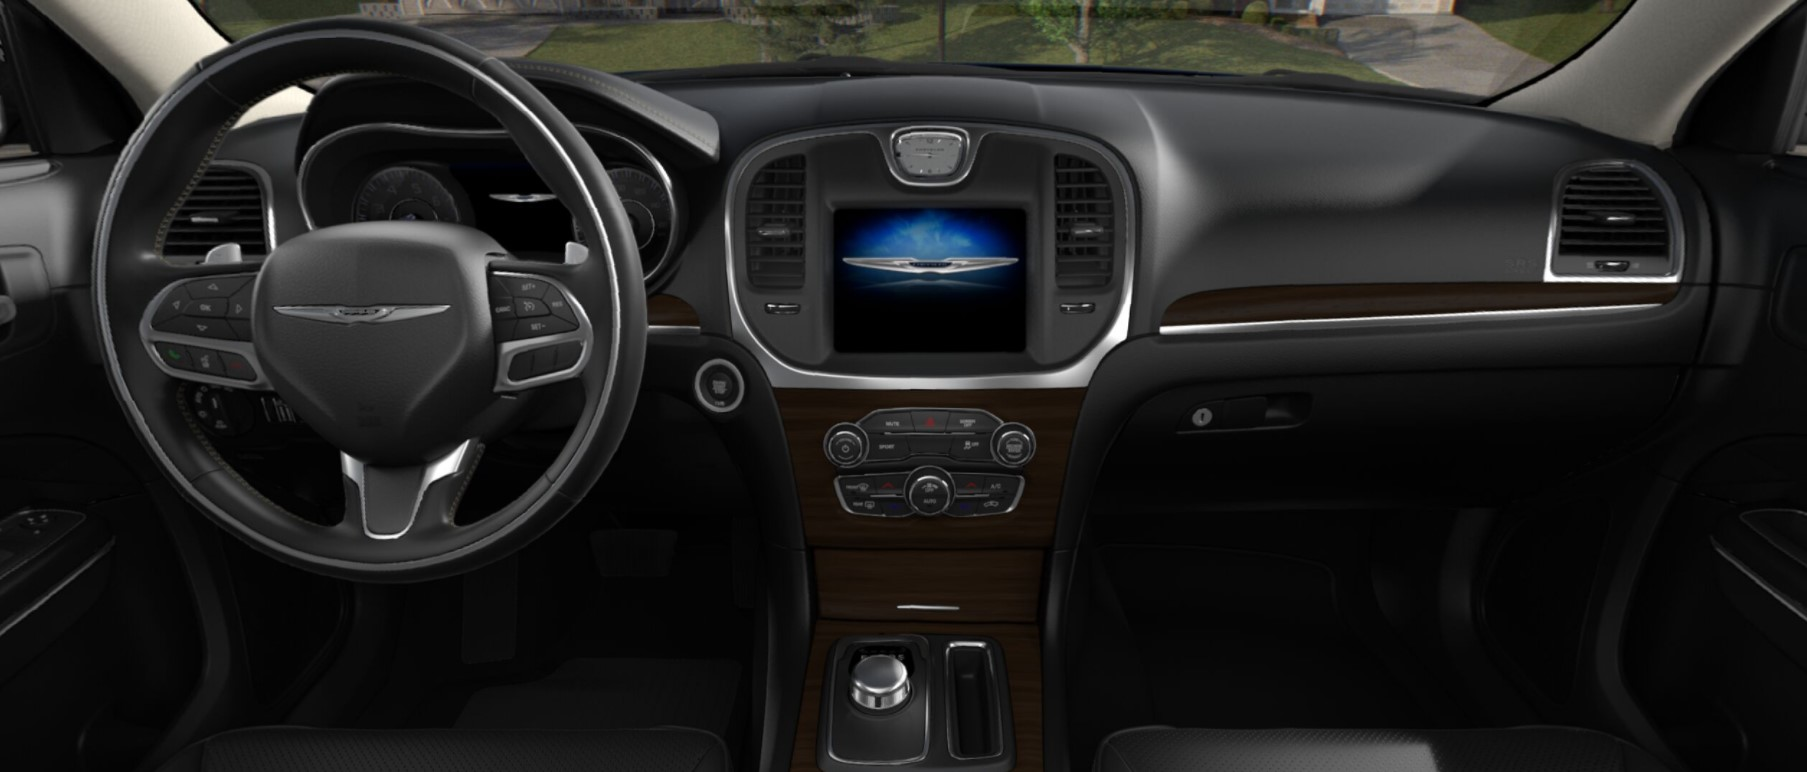 2018 Chrysler 300C Front Dashboard Interior